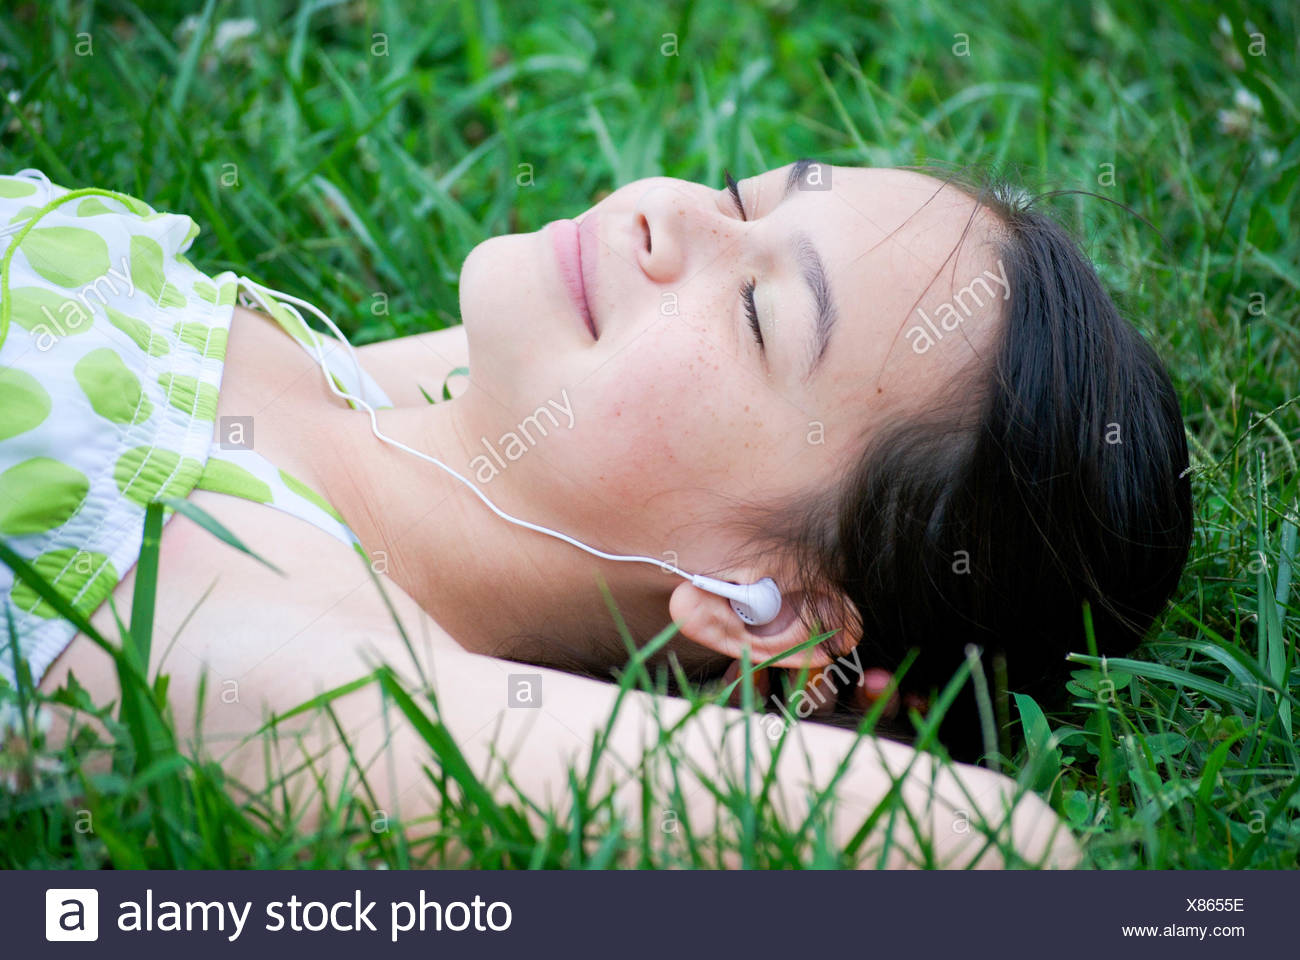 Girl (10-11 years) with in-ear headphones lying in grass - Stock Image